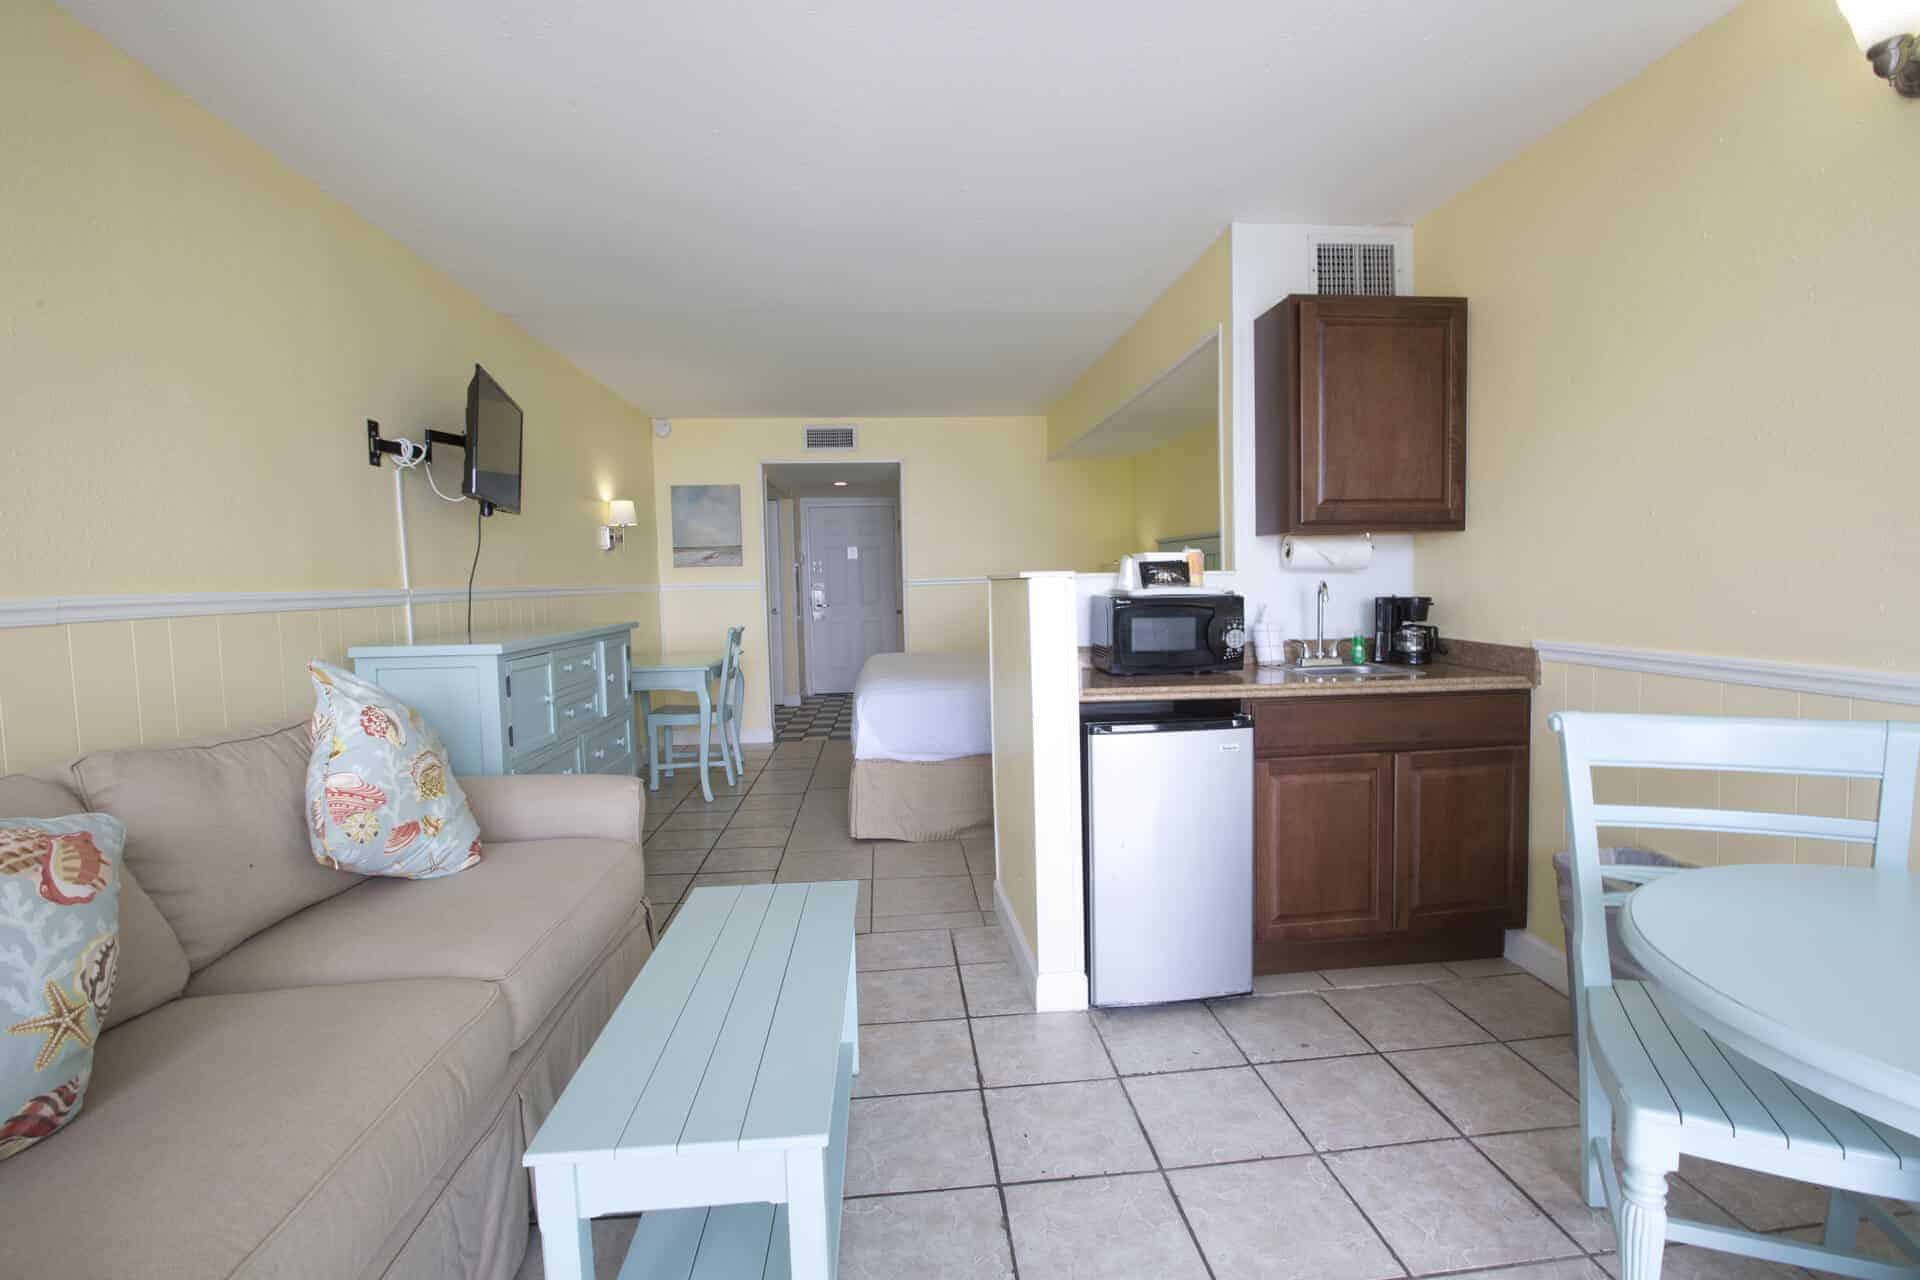 Beachfront Studio Room on Fort Myers Beach with kitchenette